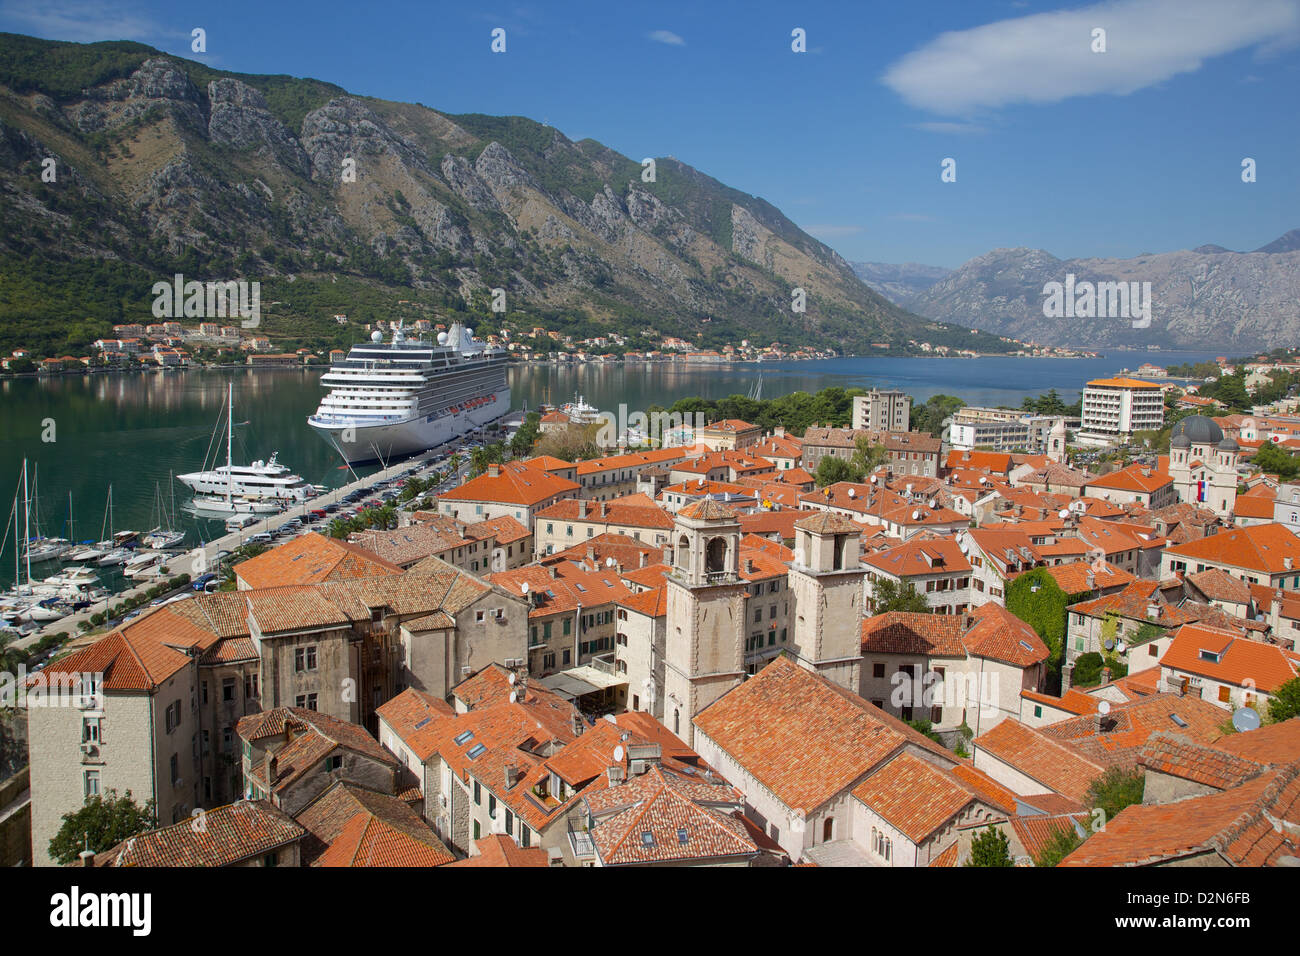 View over Old Town, UNESCO World Heritage Site, with cruise ship in port, Kotor, Montenegro, Europe - Stock Image